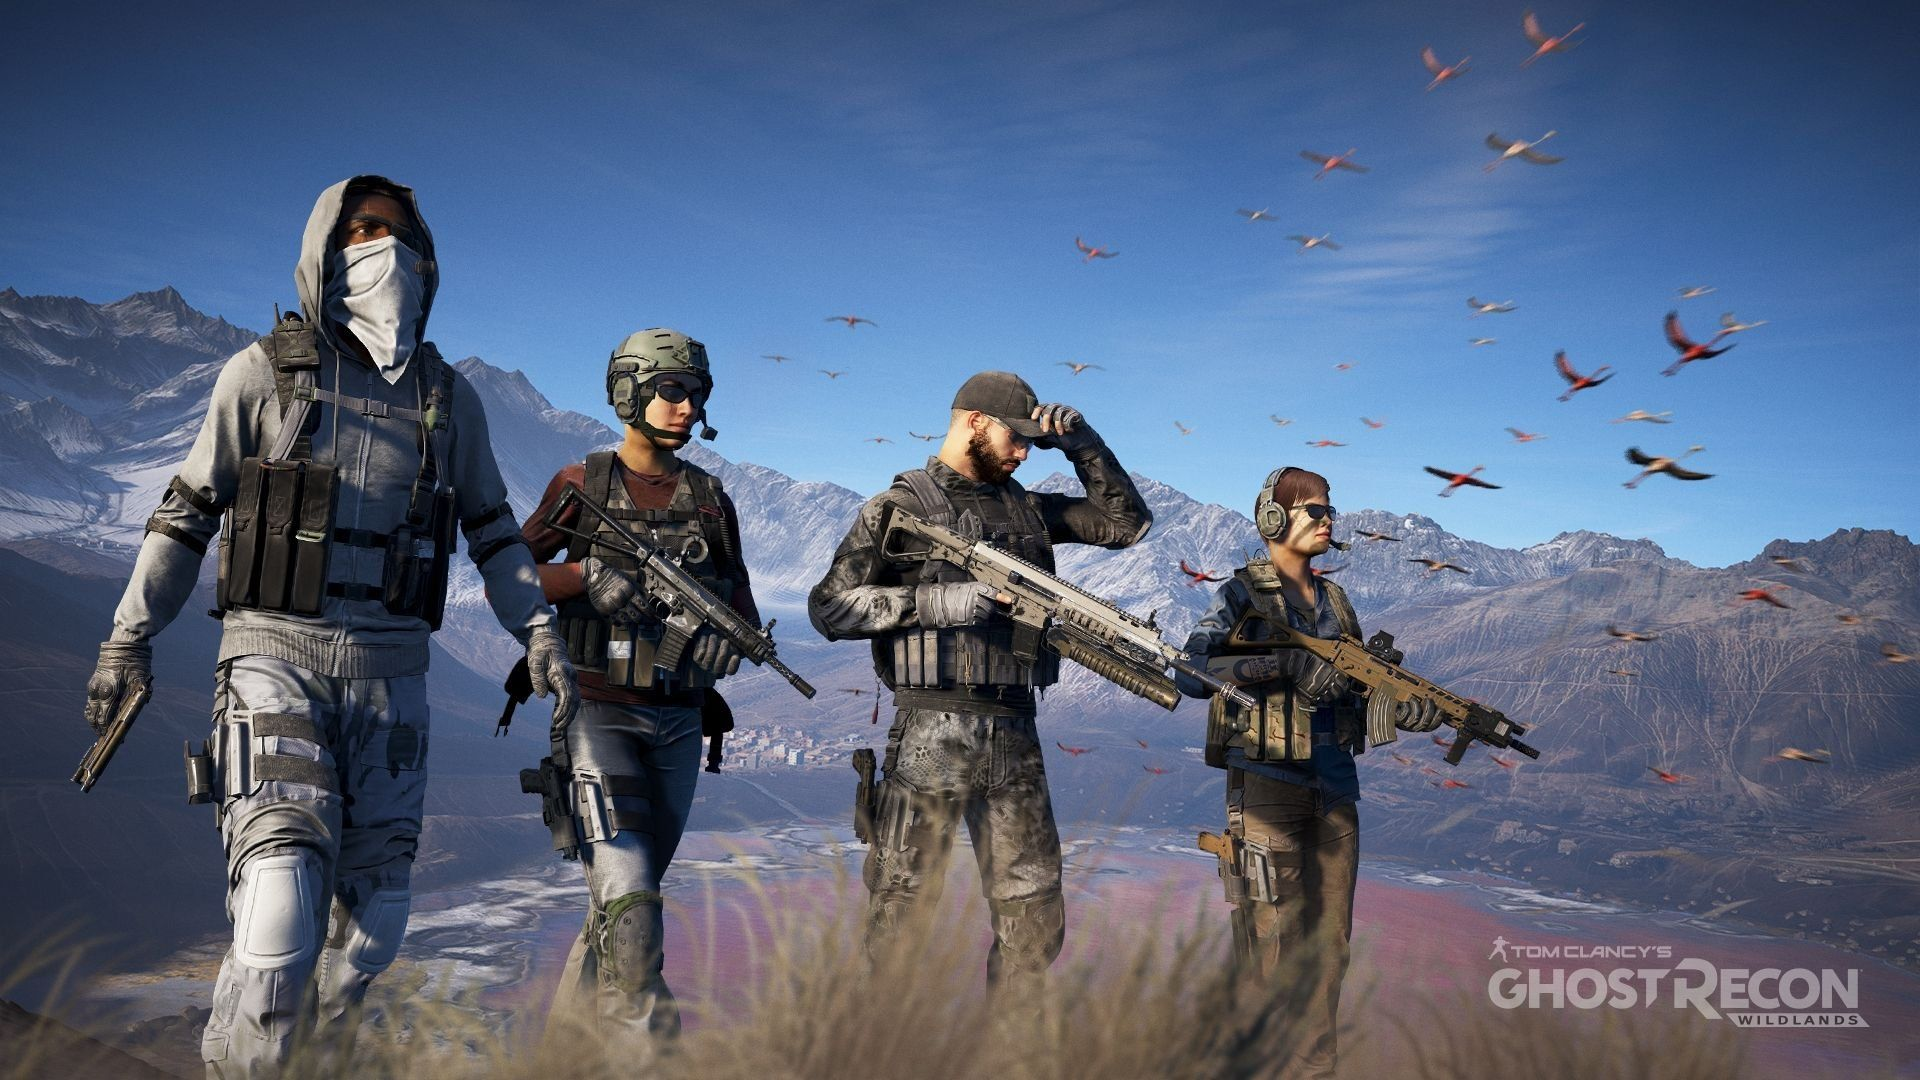 Wallpaper Hd Ghost Recon Wildlands Ghostreconwildlands Shooter